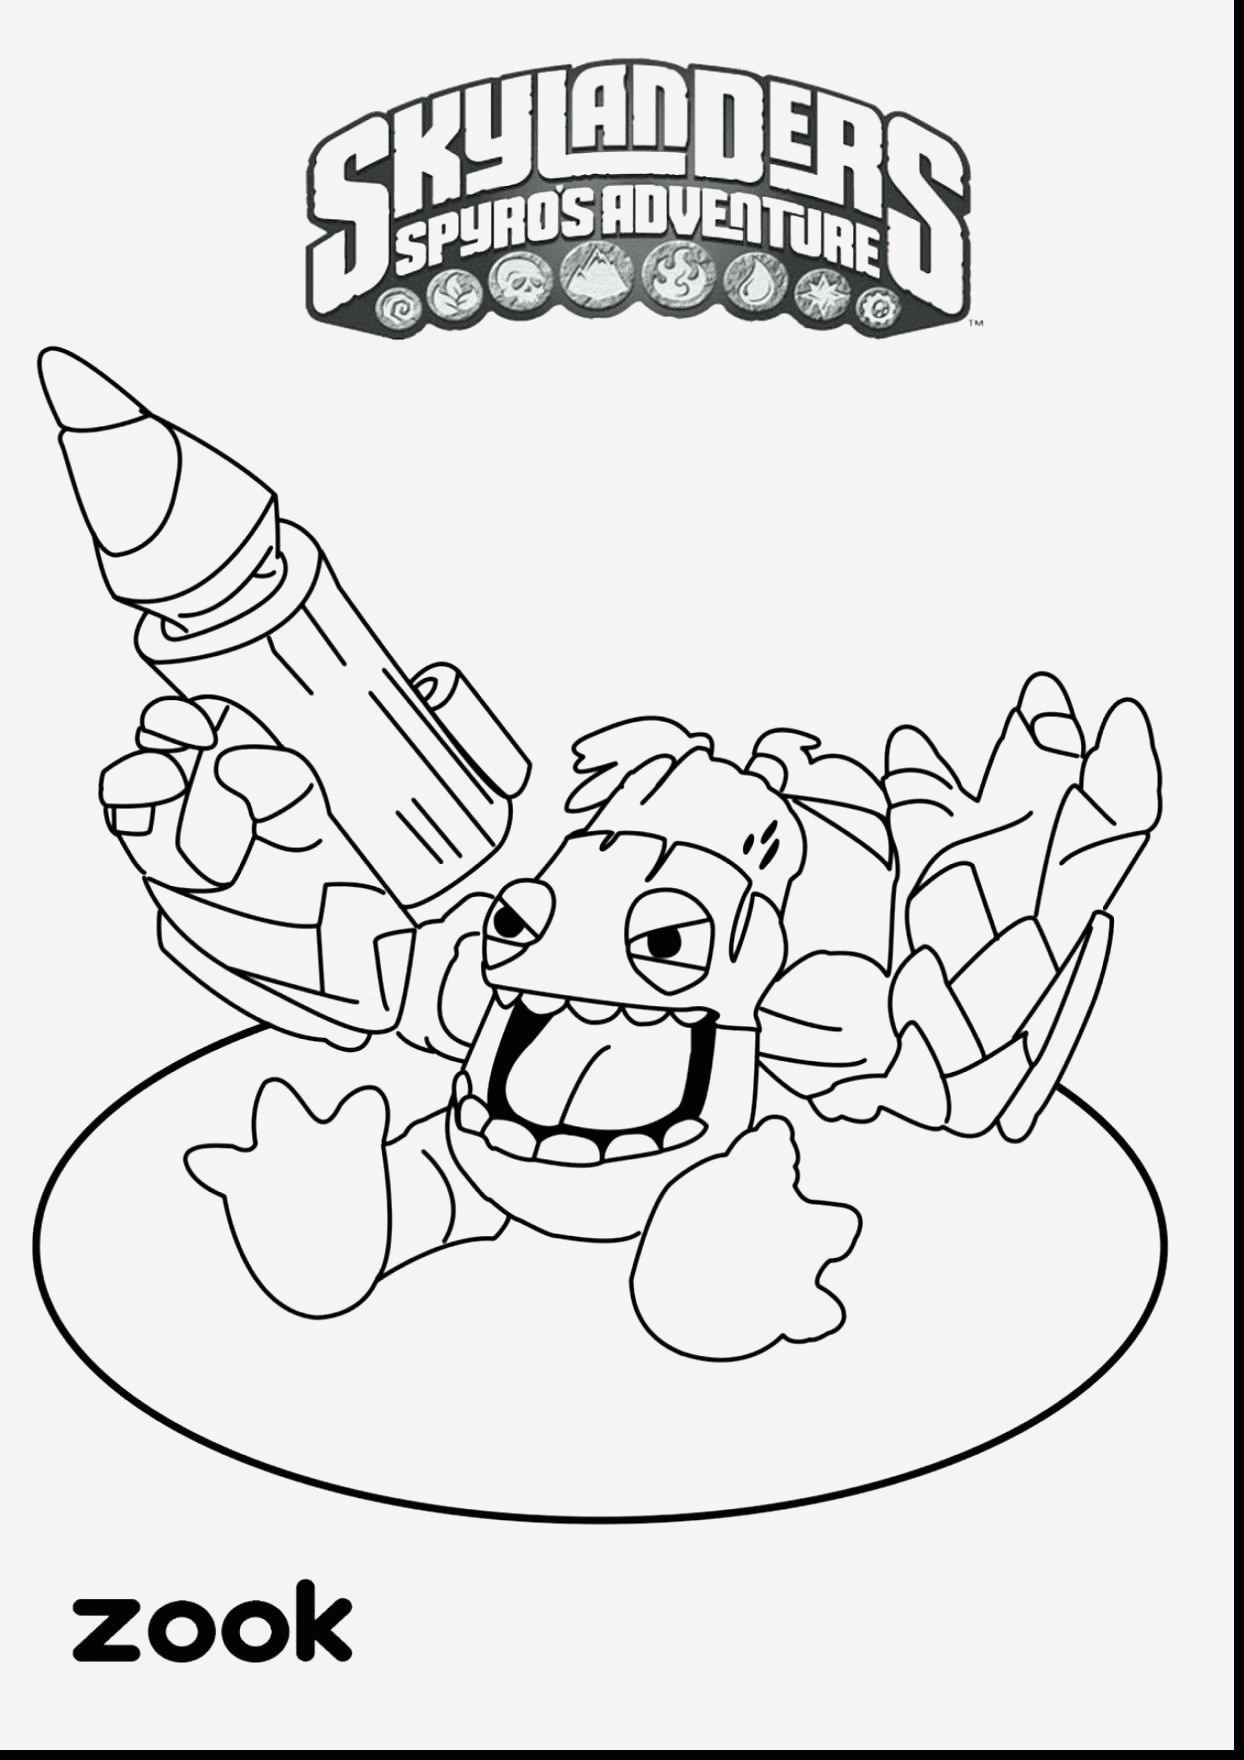 image about Shopkins Printable Color Pages referred to as 26 Shopkins Printable Coloring Internet pages Obtain - Coloring Sheets